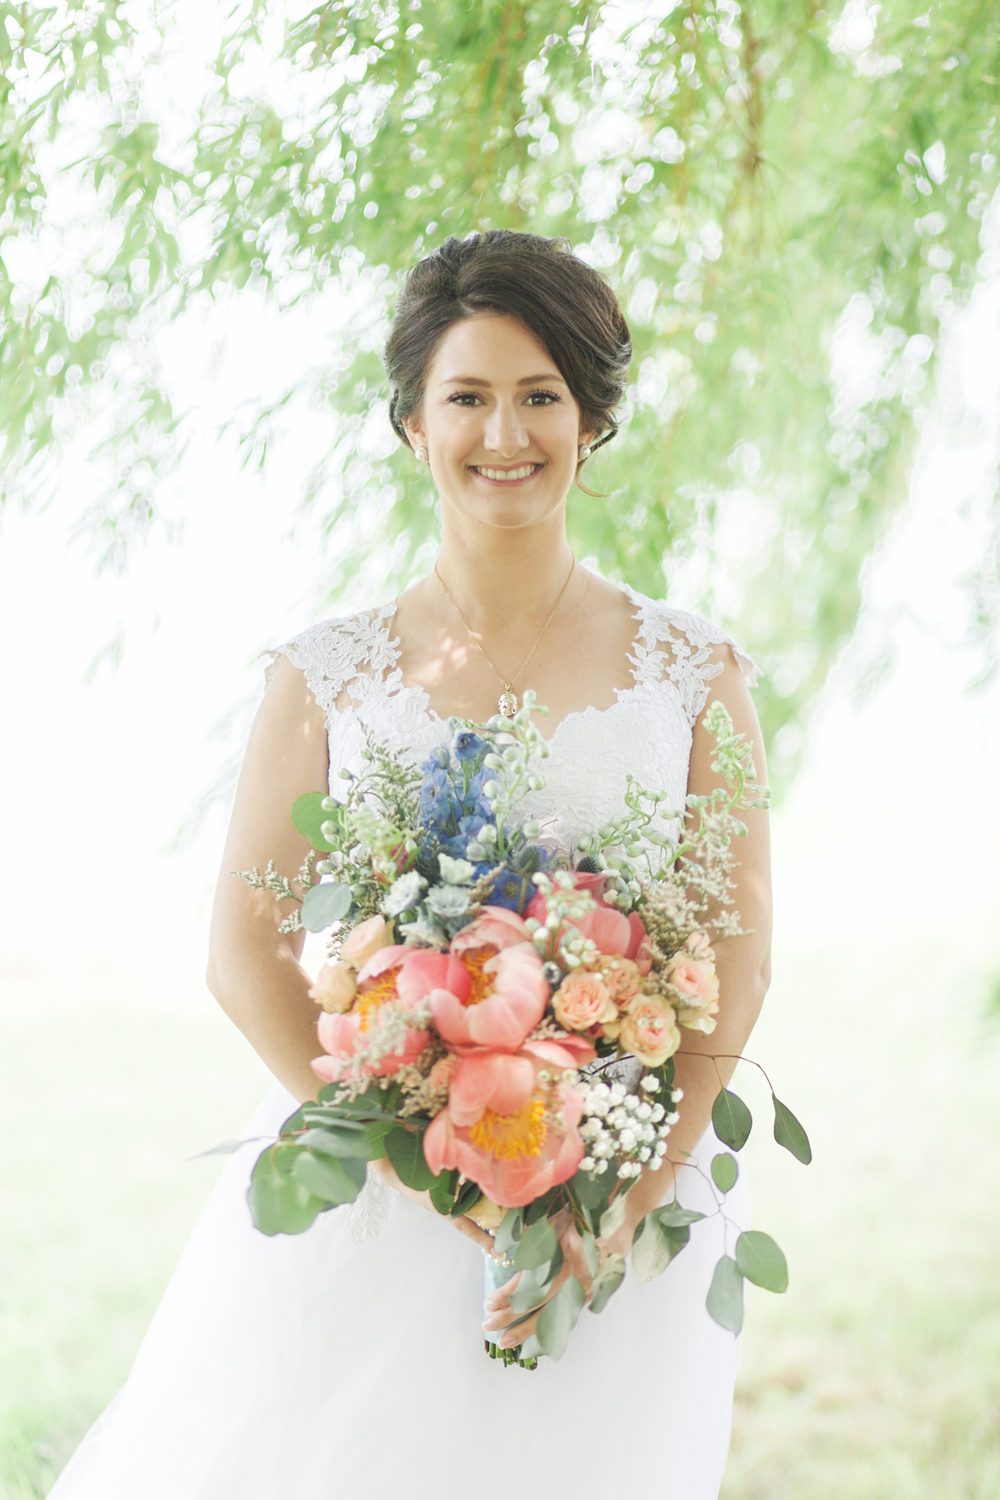 Jennifer Xu Photography_Ooh La La Designs_Niagara Wedding Florist_Niagara On The Lake Wedding florist_Niagara Wedding Photographer_Niagara on the Lake Wedding Photographer